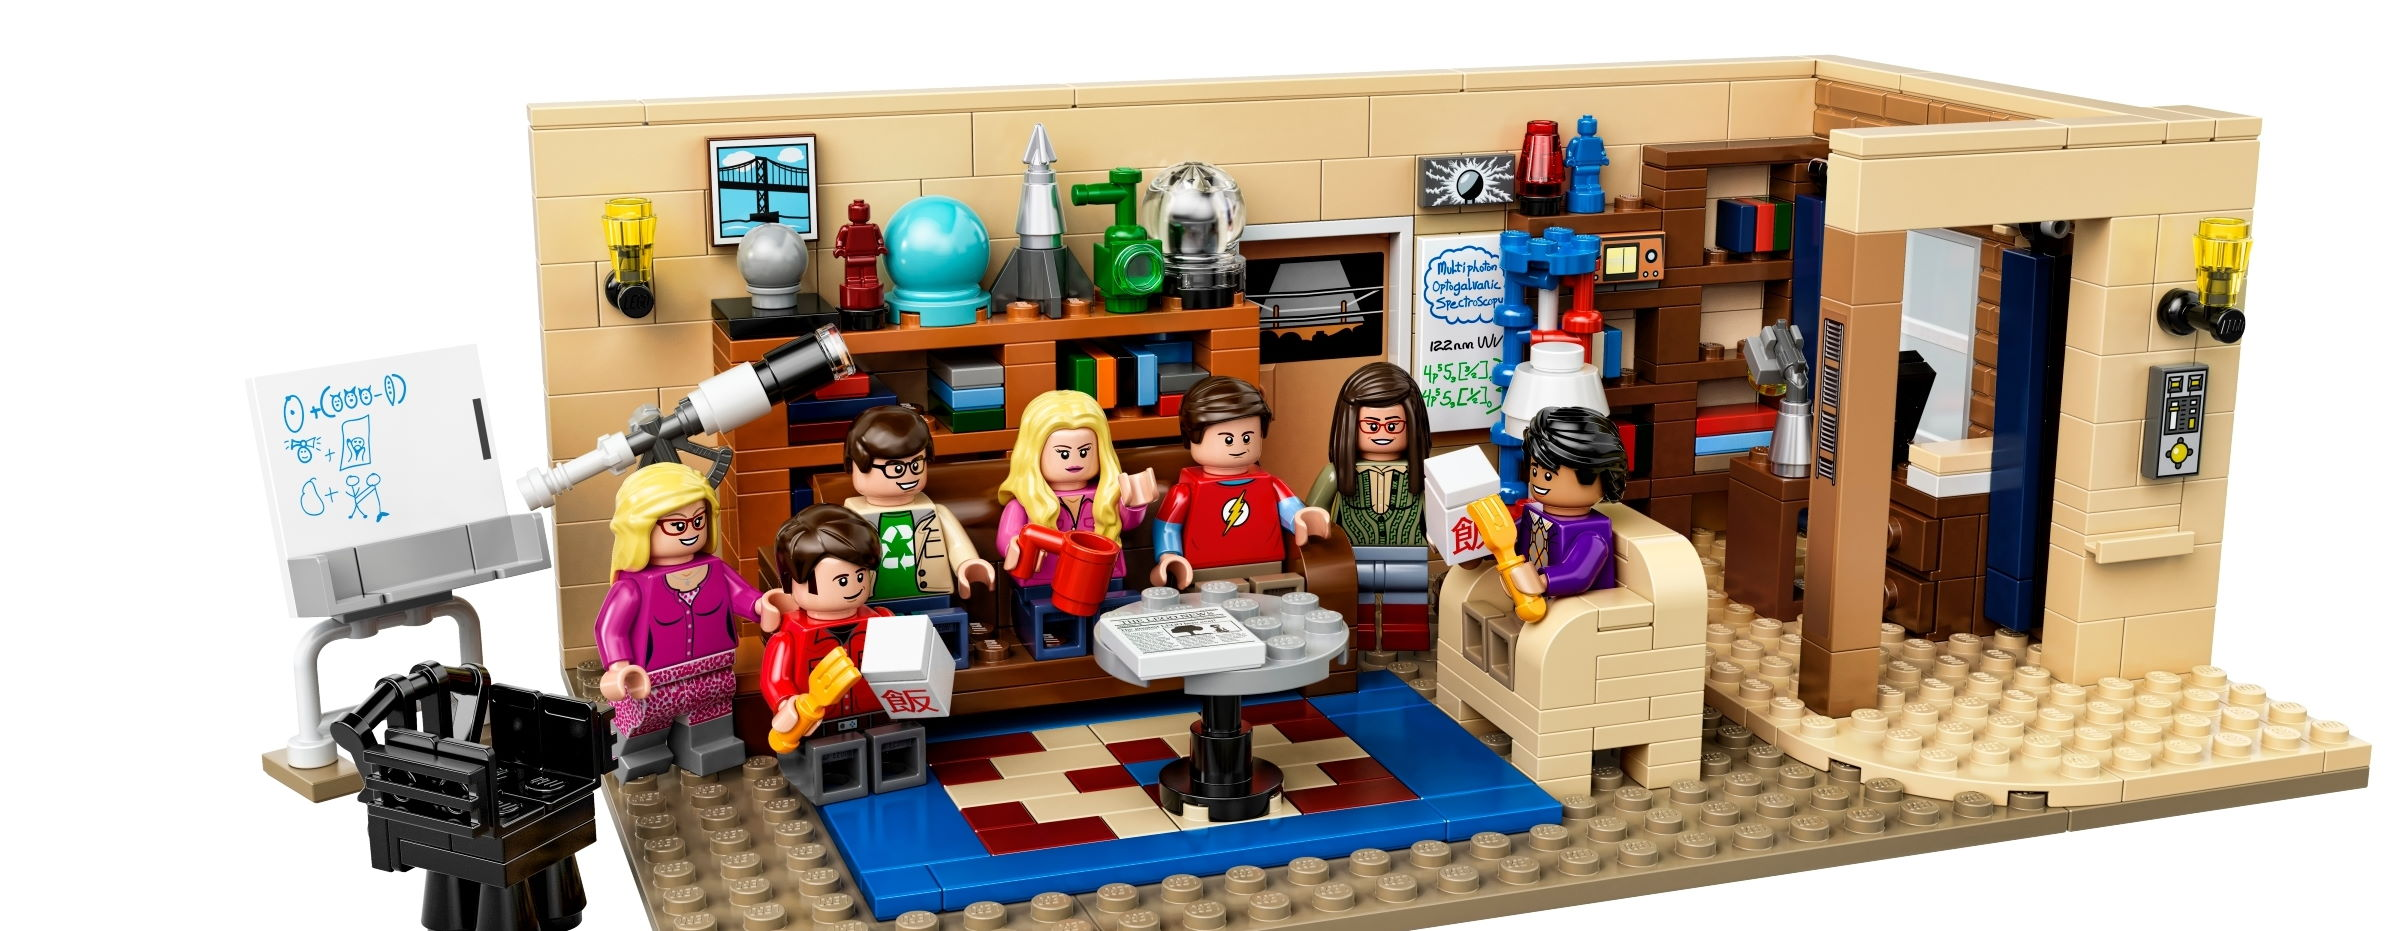 Das Big Bang Theory Set als Lego